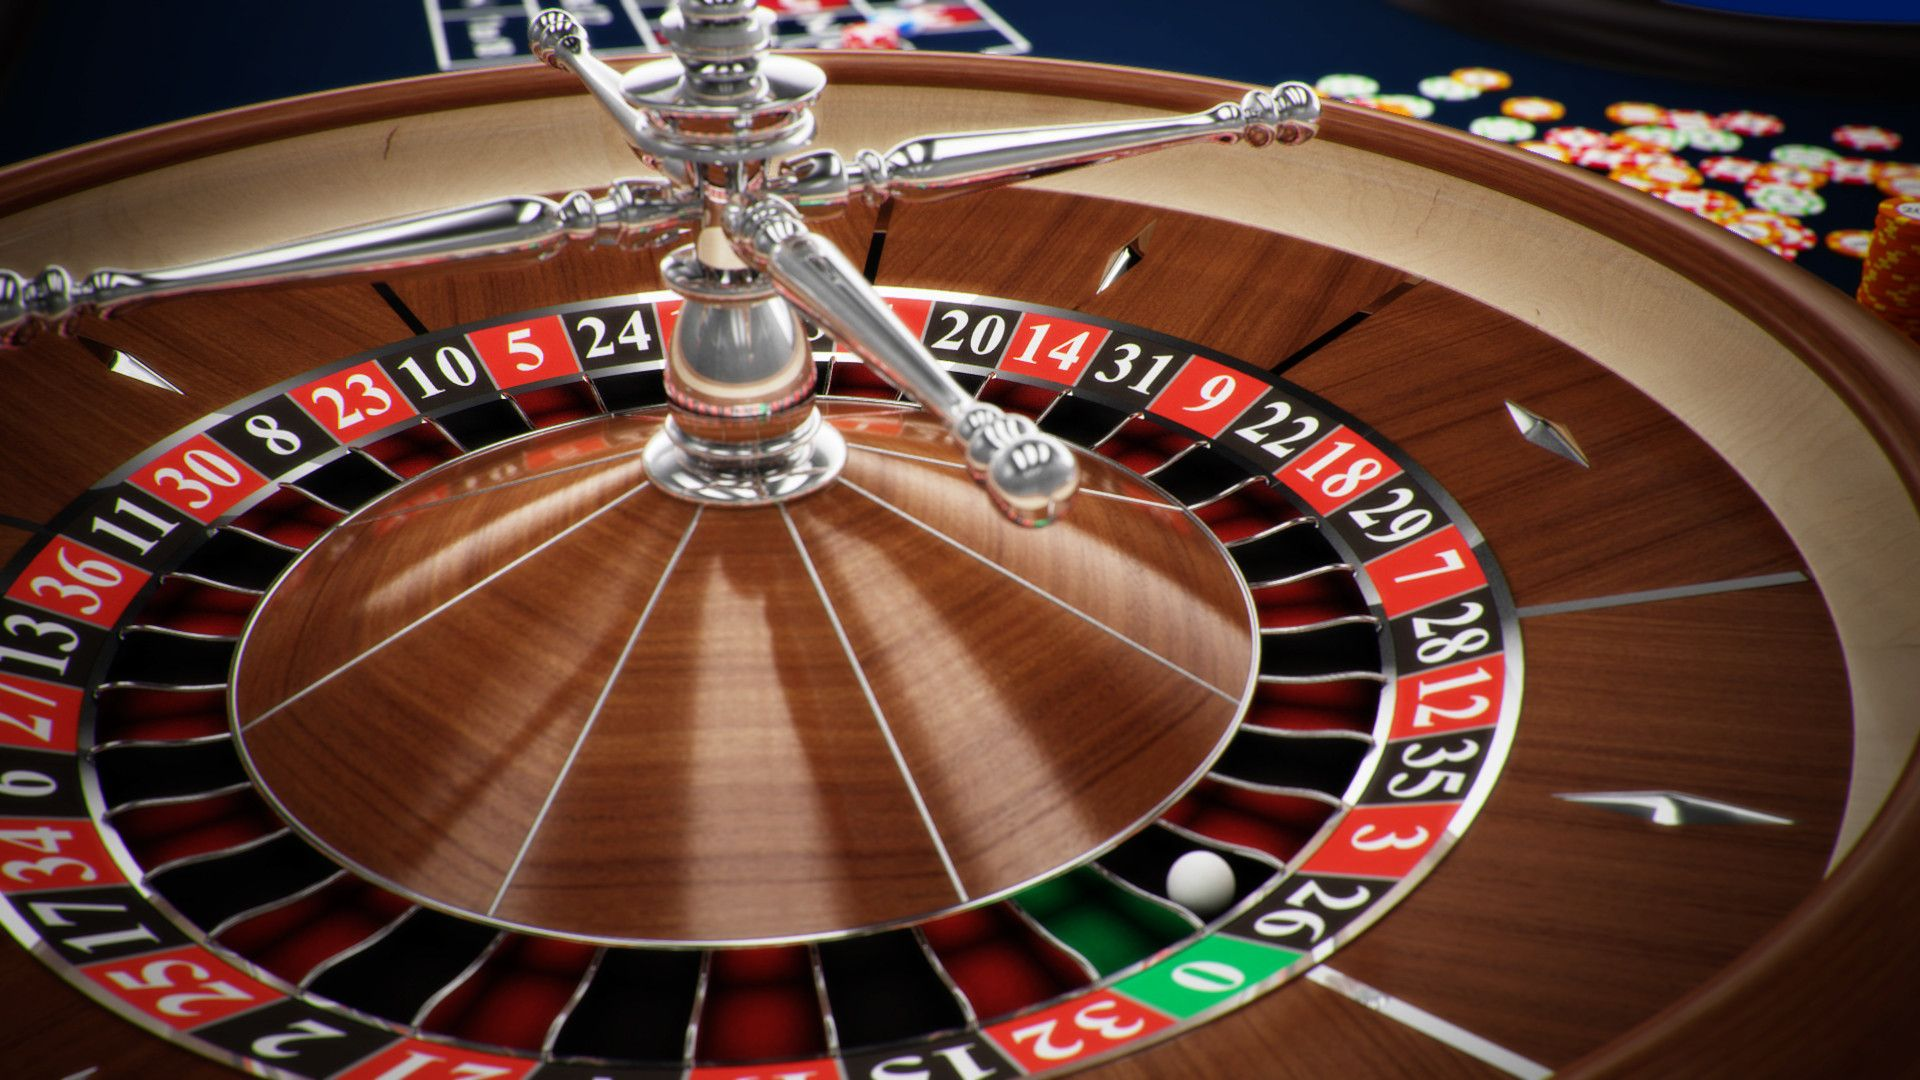 Maths: The Key To Roulette Gold? - The Koalition